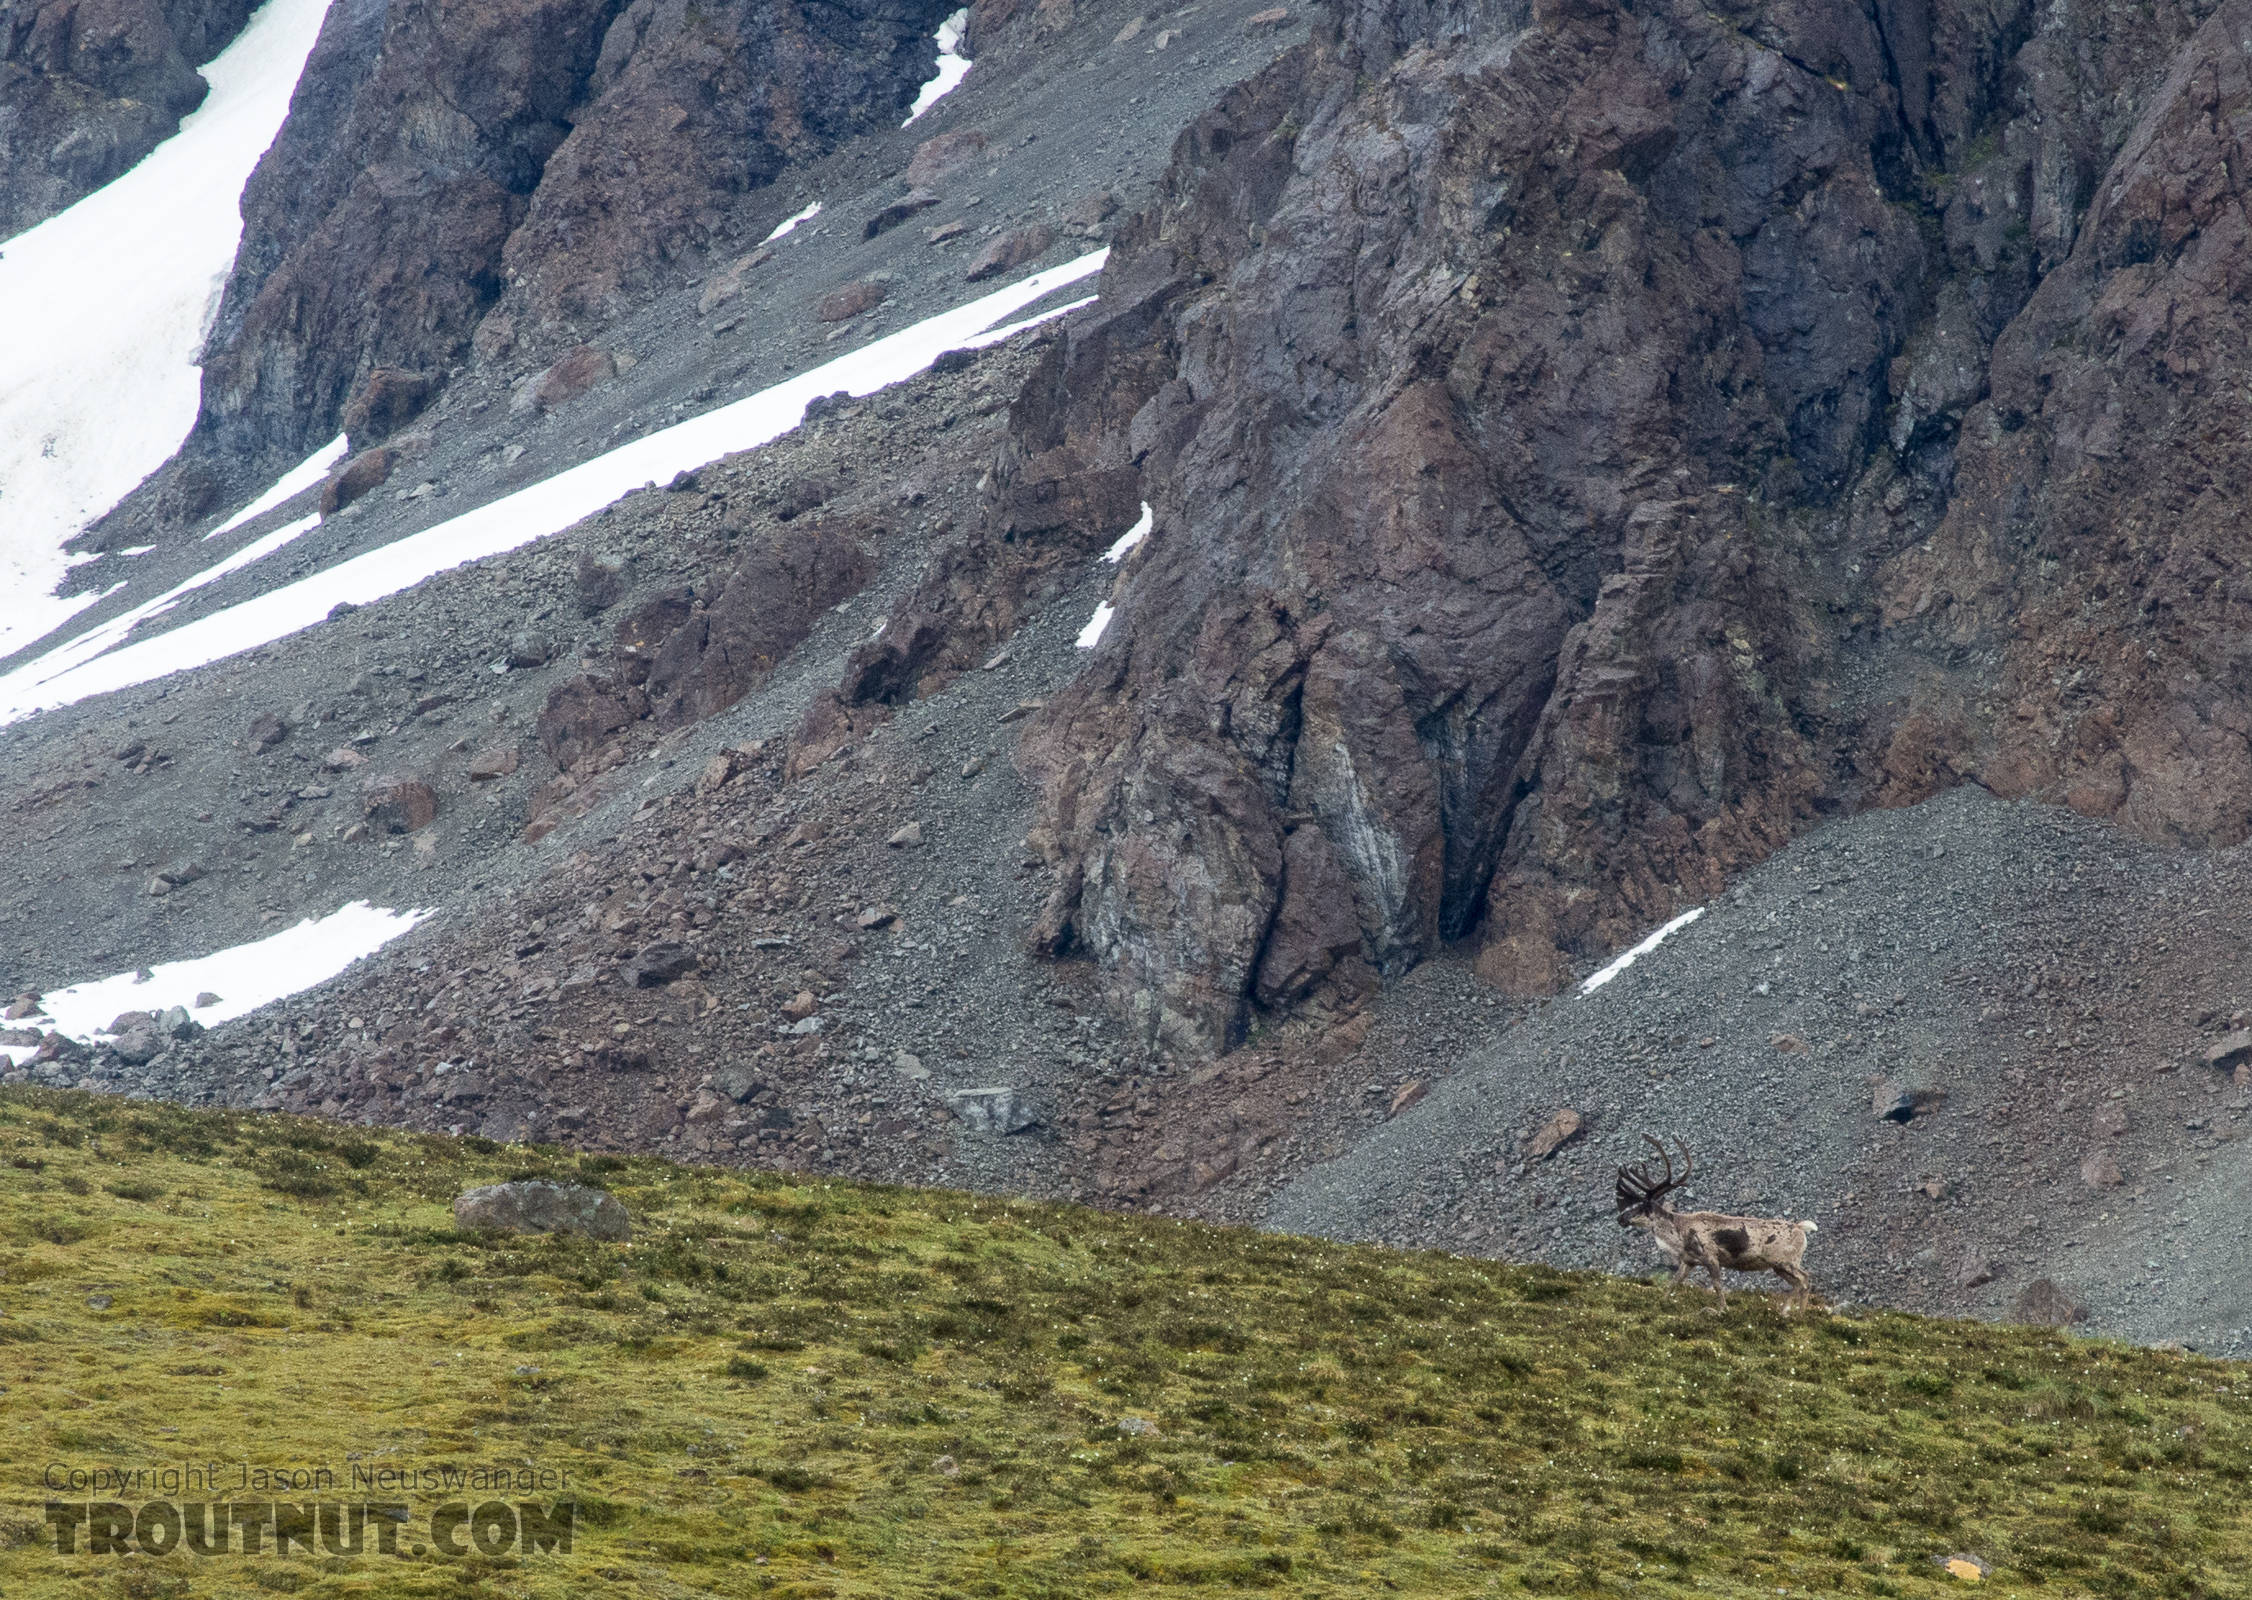 Bull caribou walking away From Clearwater Mountains in Alaska.